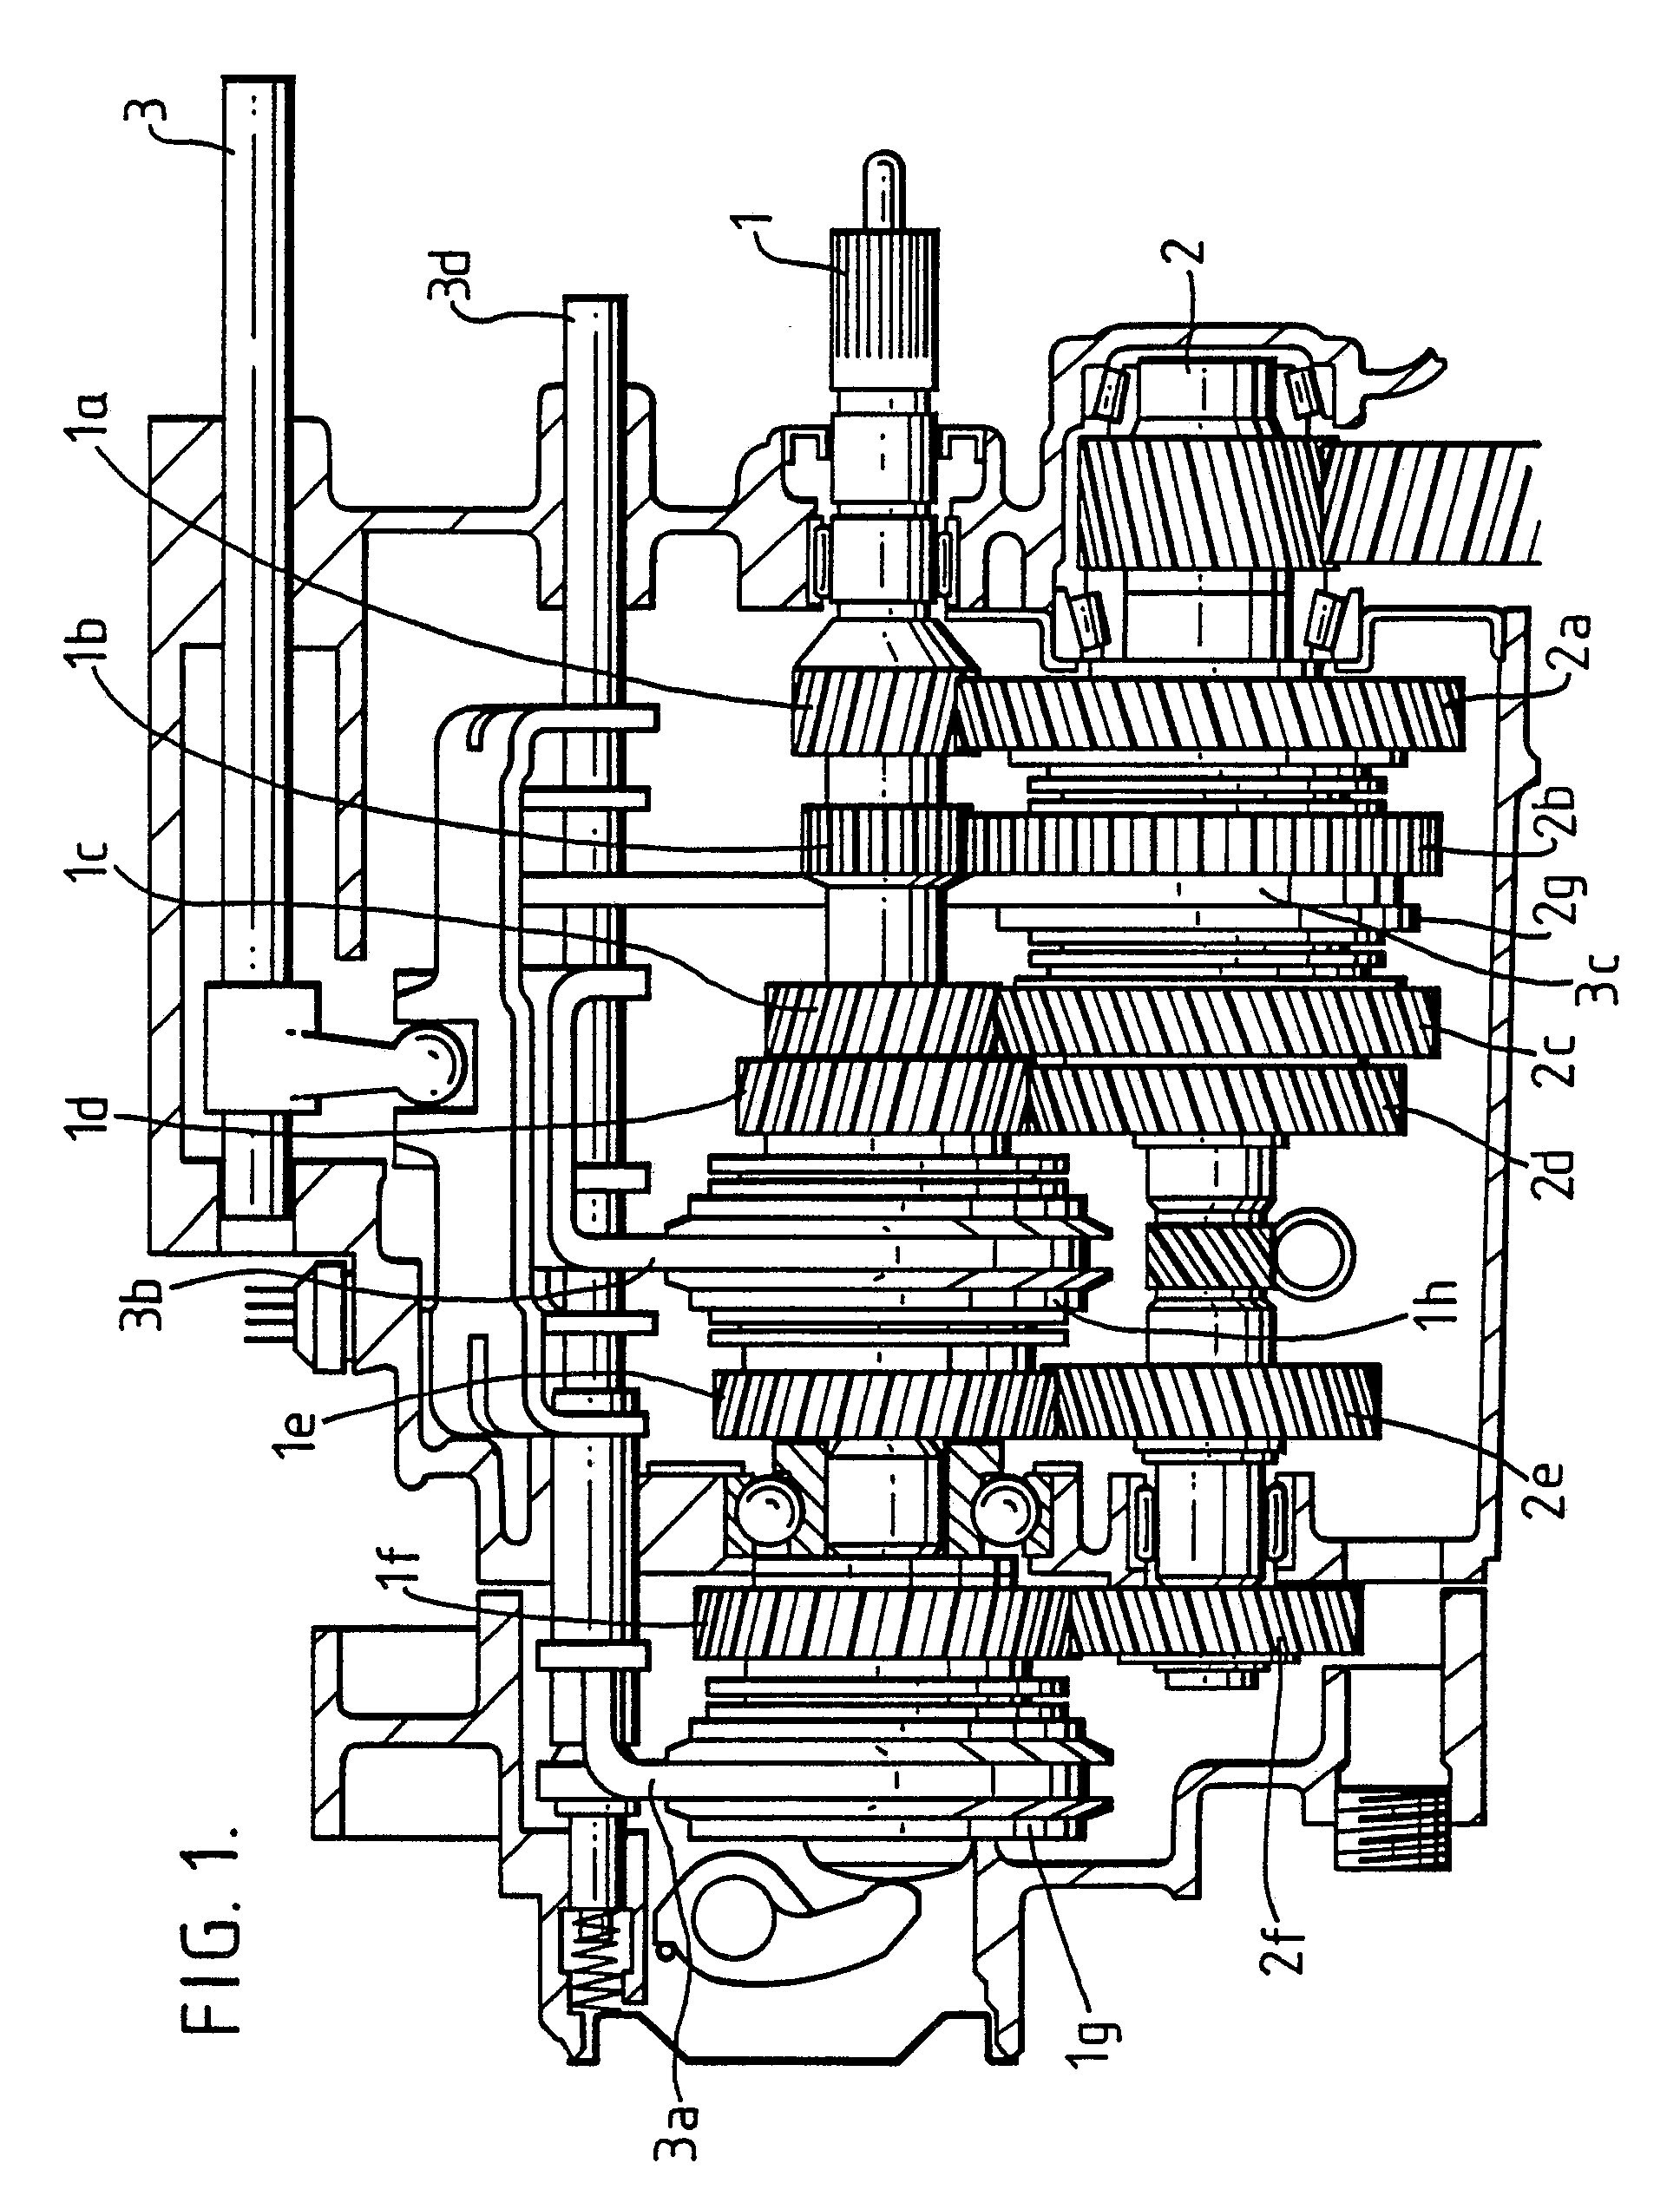 Manual Transmission additionally P 0900c1528018d3da further Dodge Transmission Parts Diagram likewise P 0900c1528007fe7c likewise Synchromesh Gearbox Diagram. on manual transmission synchronizer